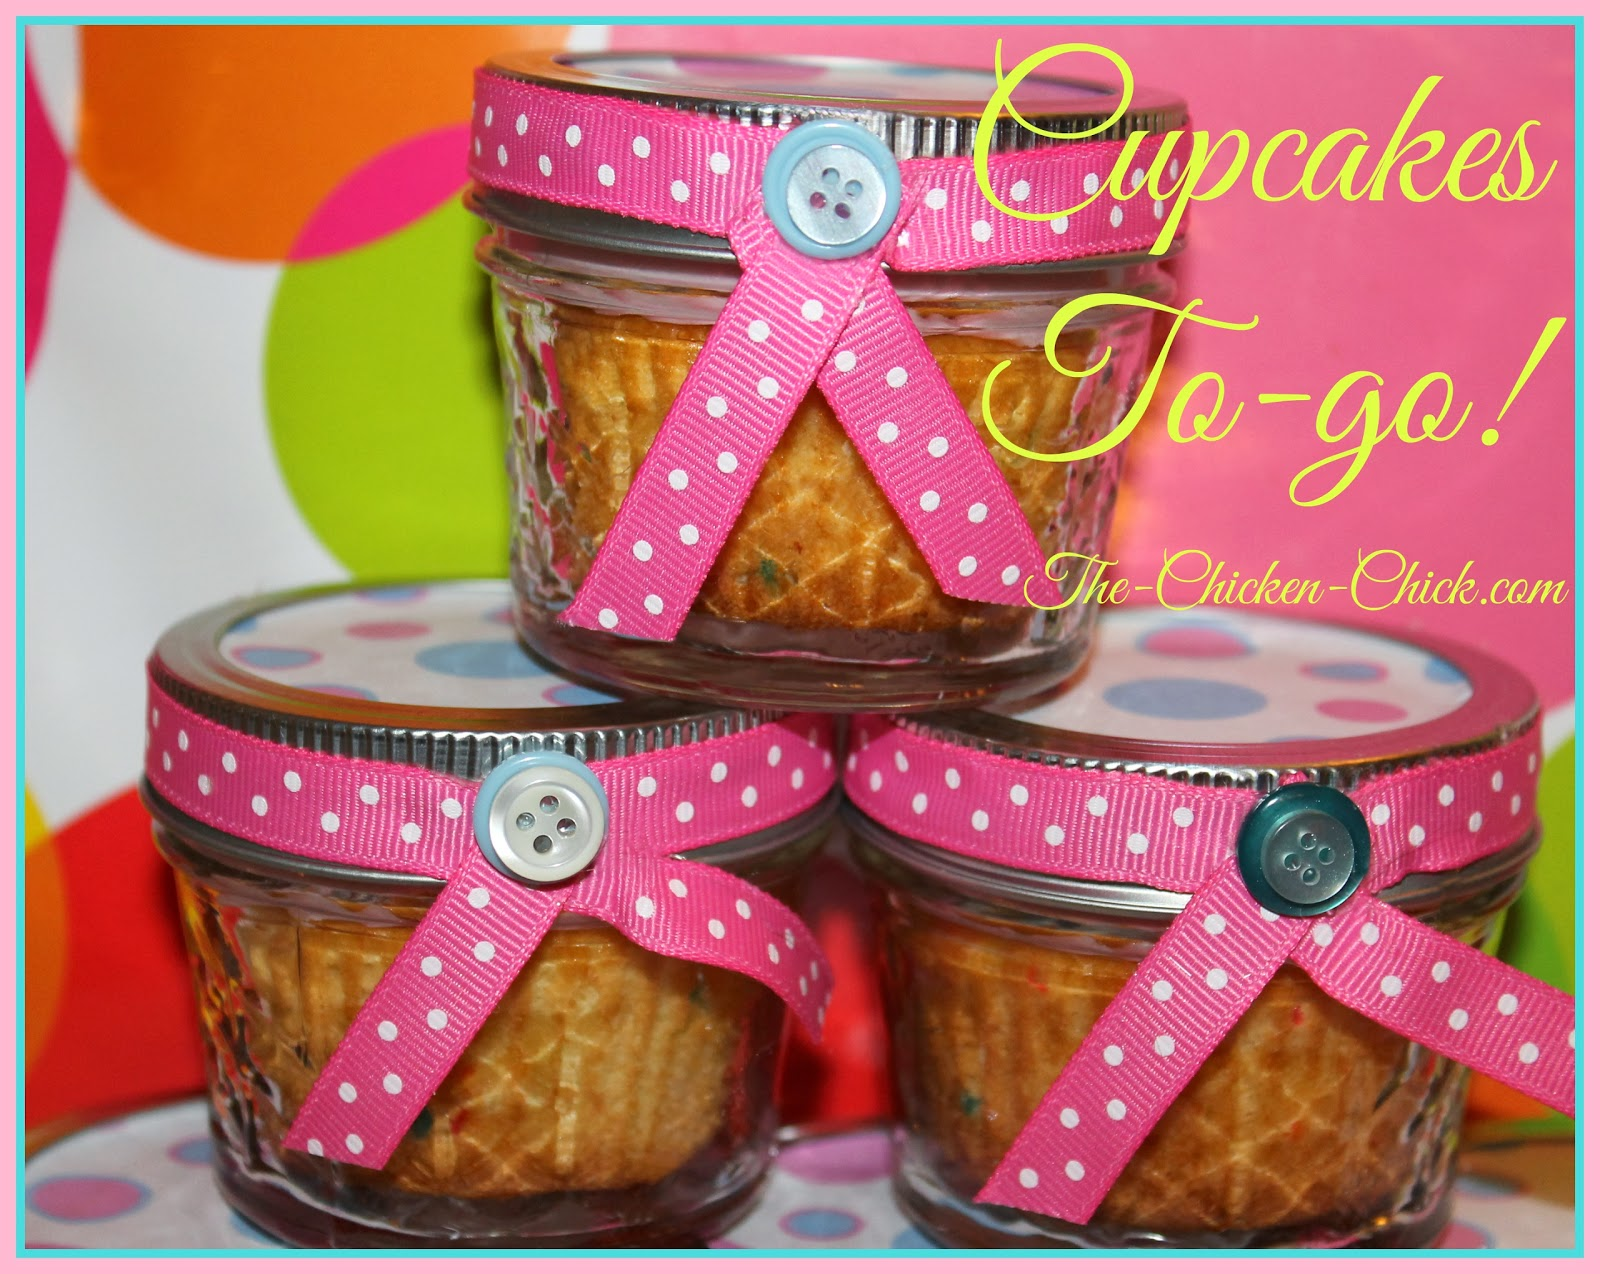 Cupcakes To-go! Cupcakes in a jar.